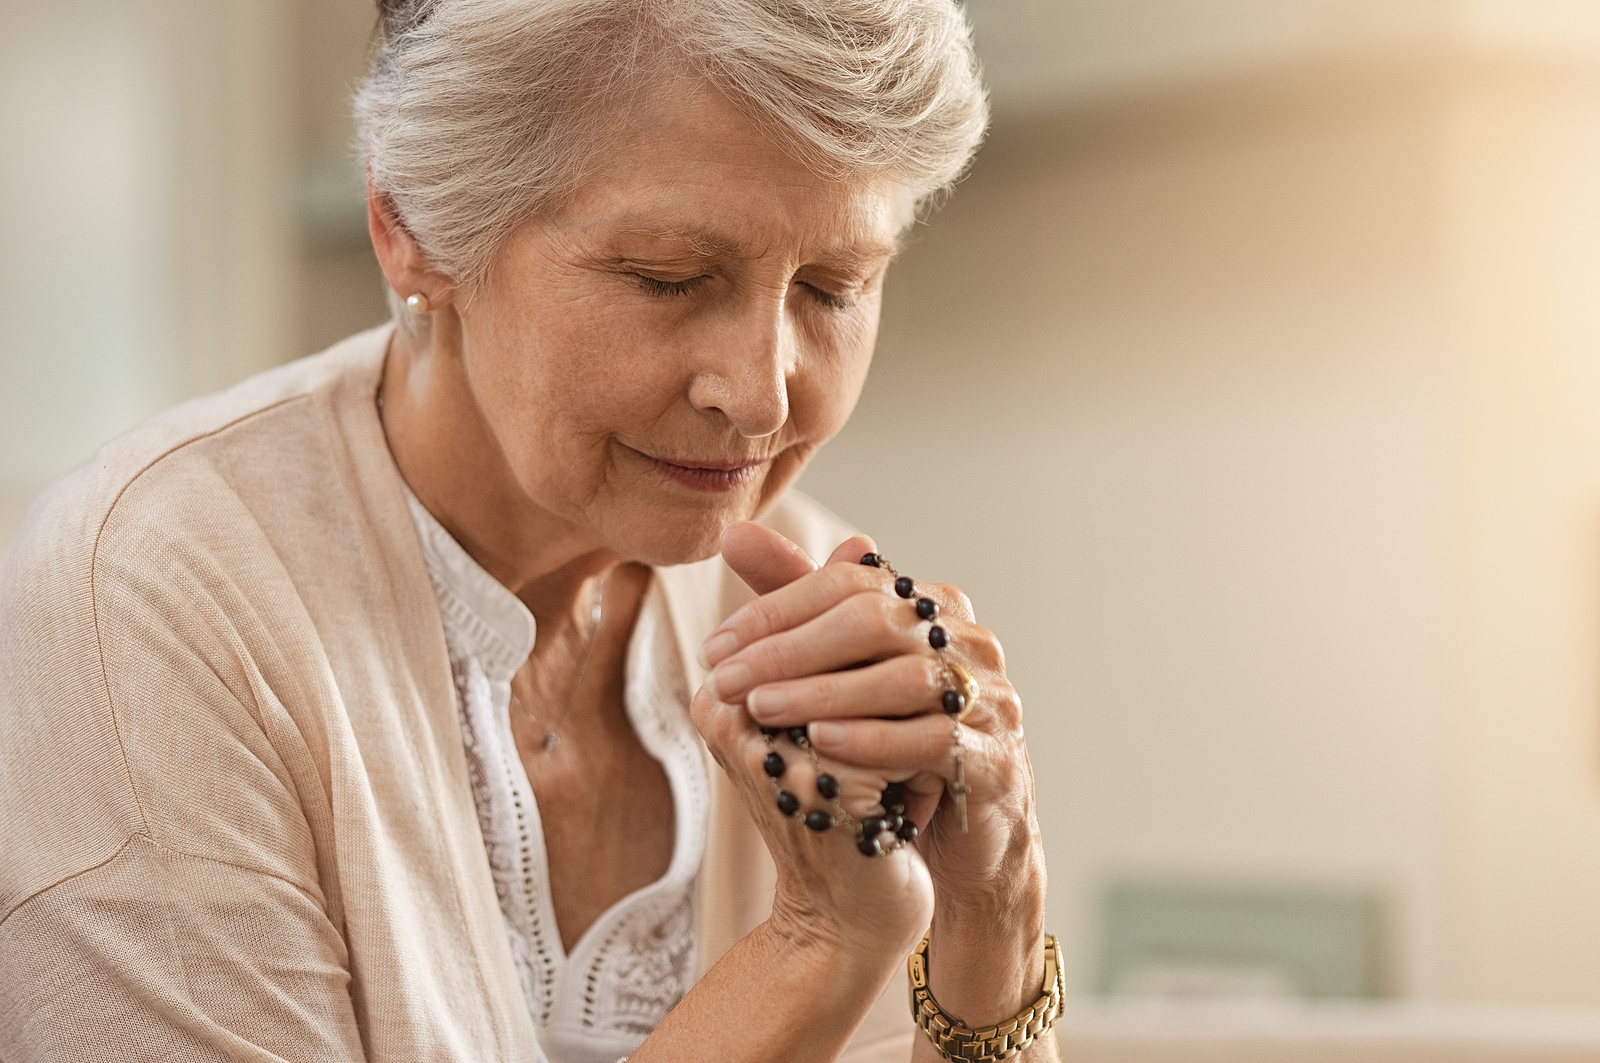 A senior woman practices her spiritual wellness by praying with a rosary